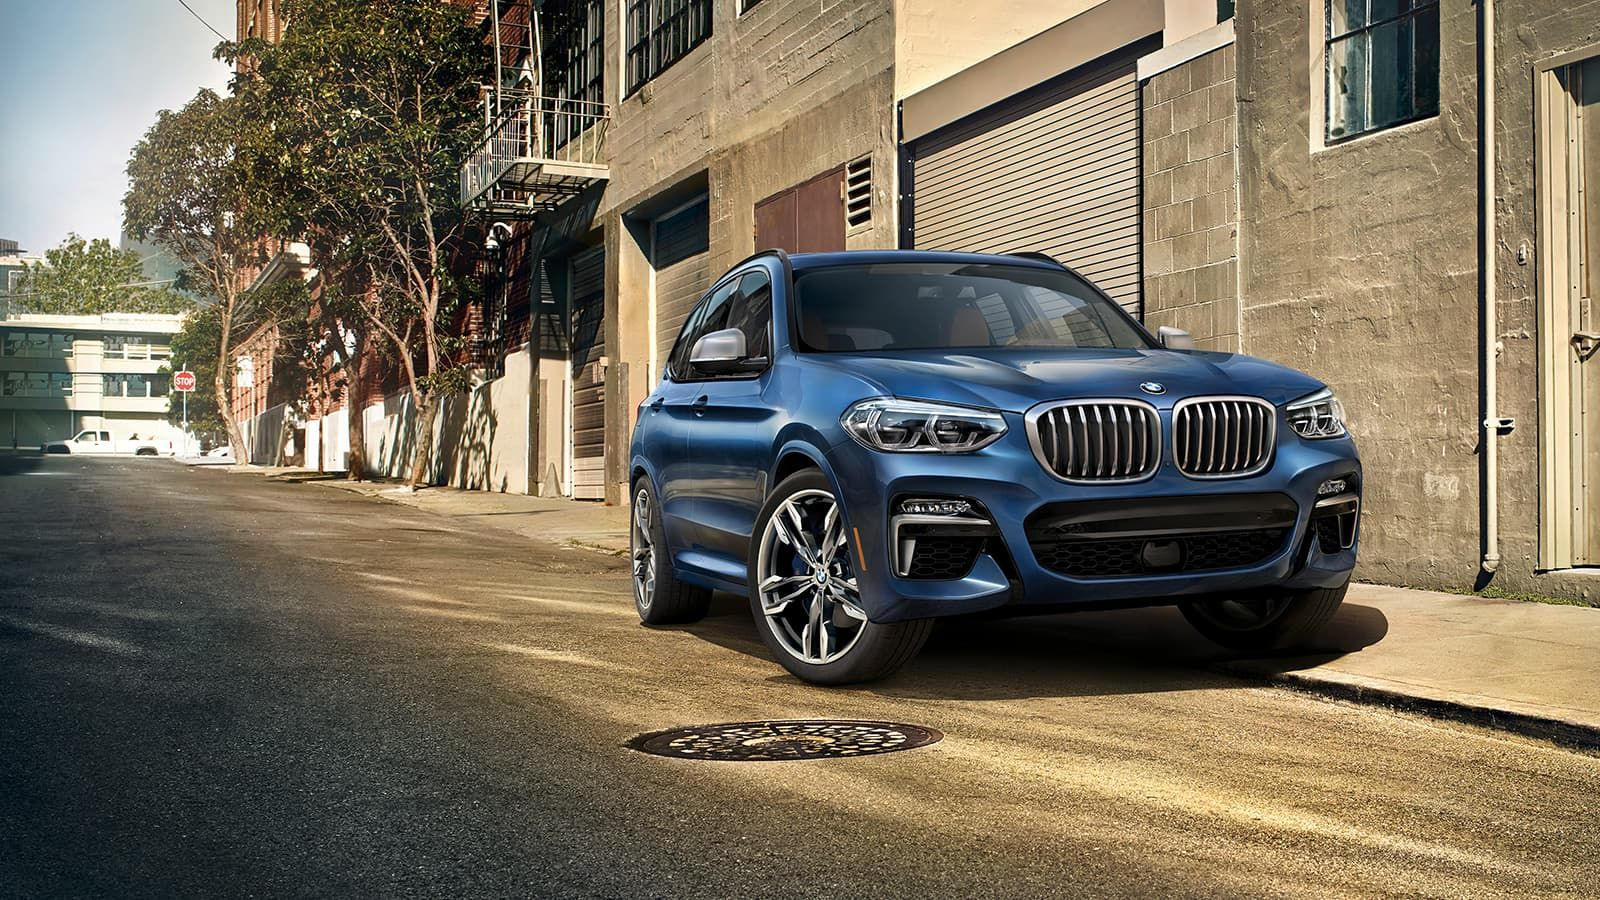 2020 BMW X3 Review, Pricing, and Specs